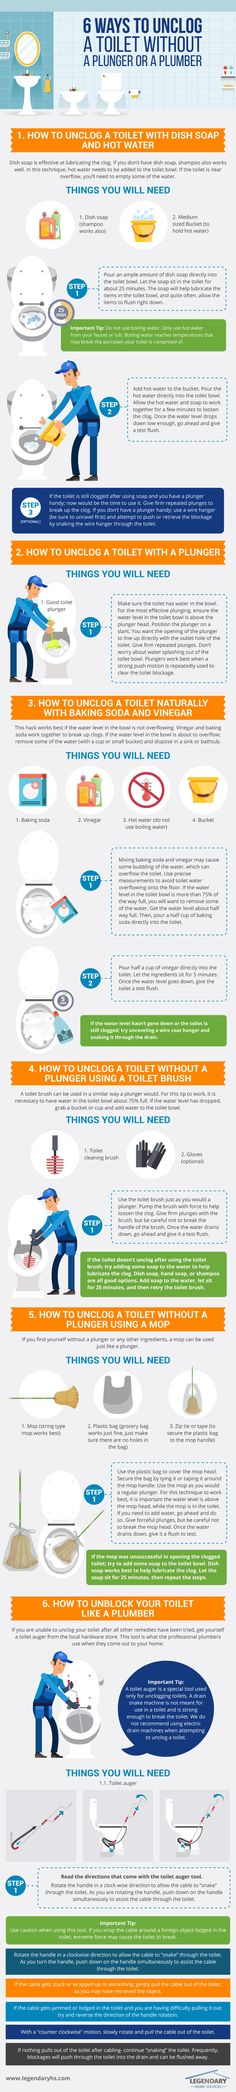 6 Ways to Unclog Your #Toilet without a plunger or a plumber - Do you fancy an infographic? There are a lot of them online, but if you want your own please visit http://linfografico.com/en/prices/ Online girano molte infografiche, se ne vuoi realizzare una tutta tua visita http://www.linfografico.com/prezzi/